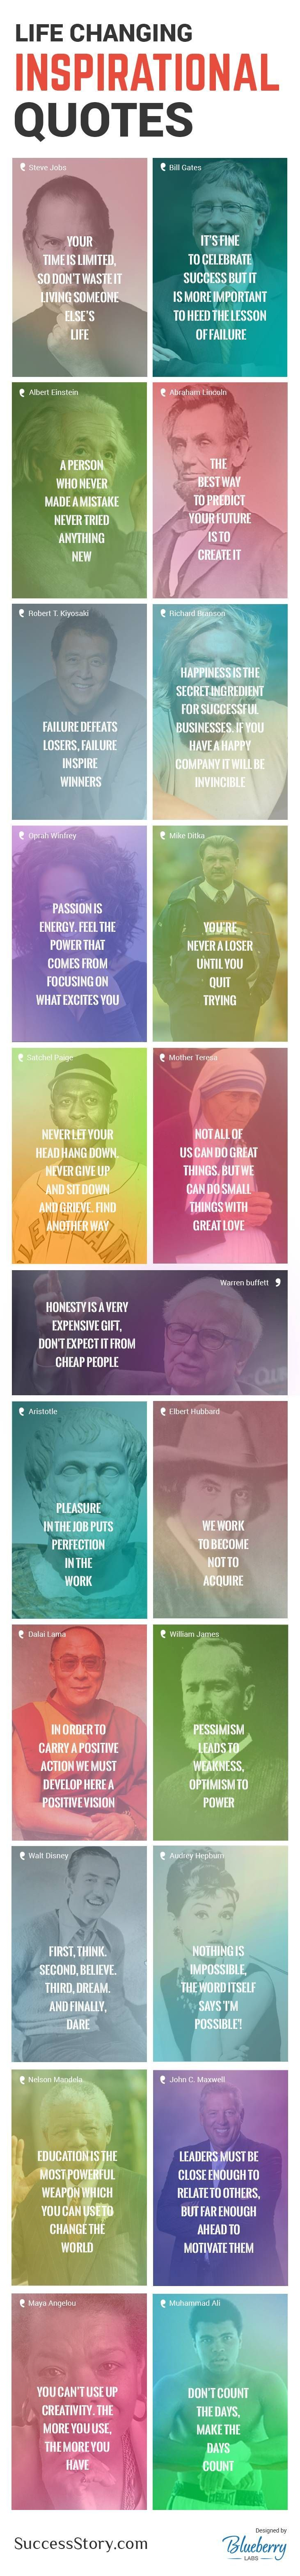 21 Crucial Life Lessons From The Most Successful People